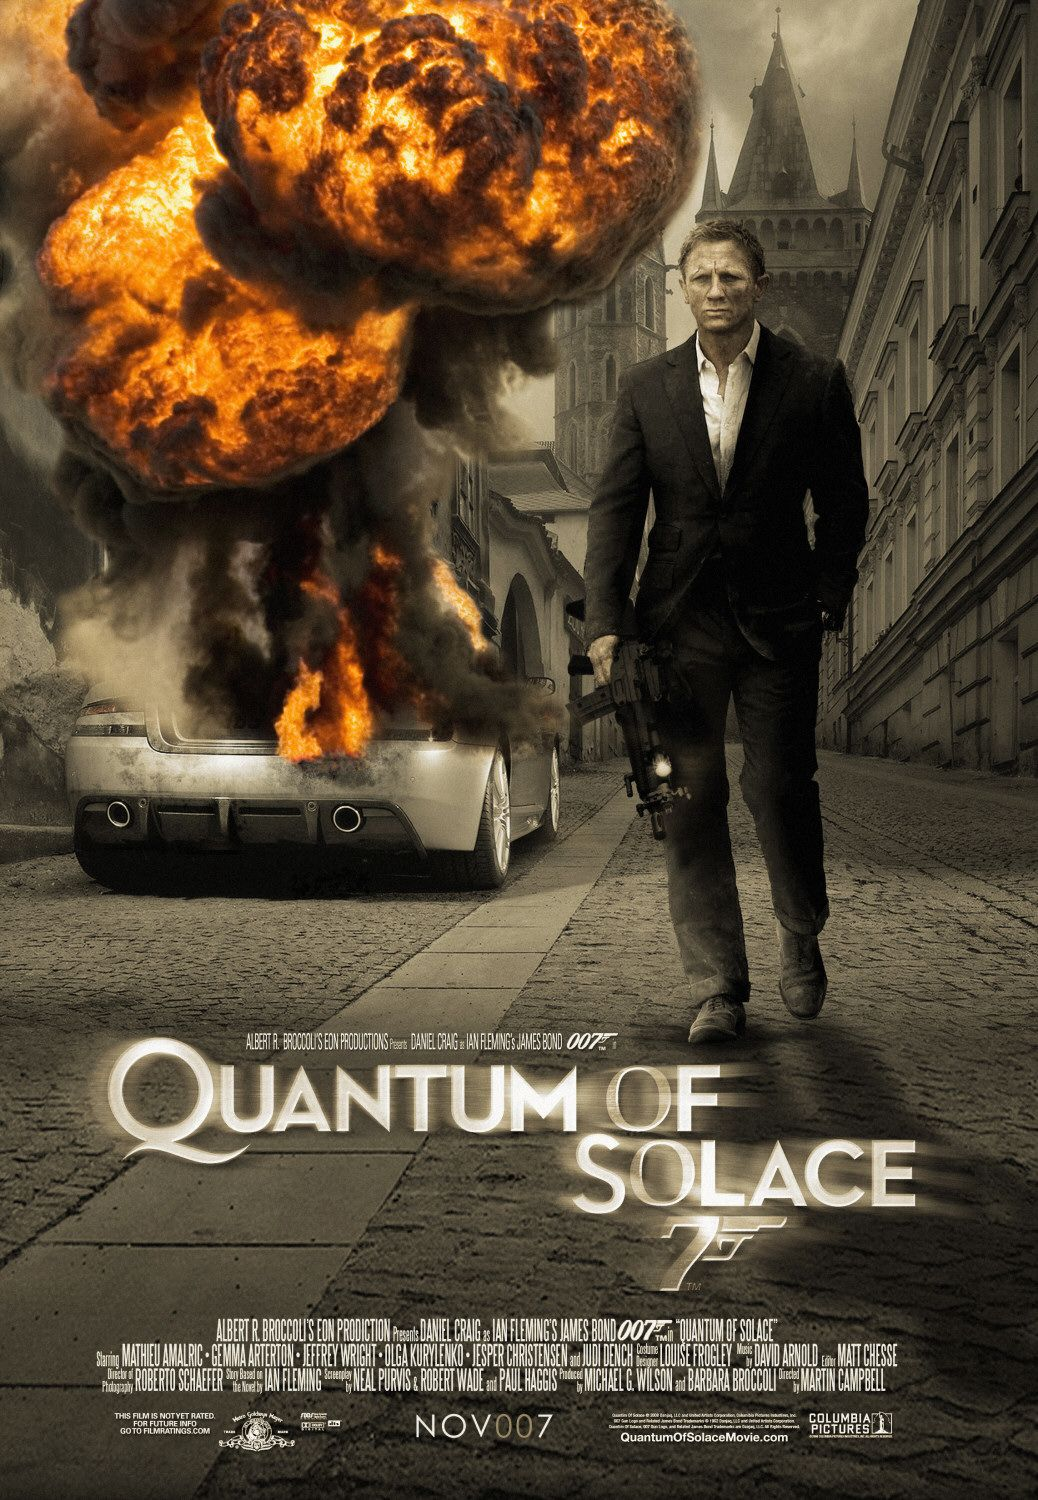 James Bond Quantum Of Solace Poster Images & Pictures - Becuo